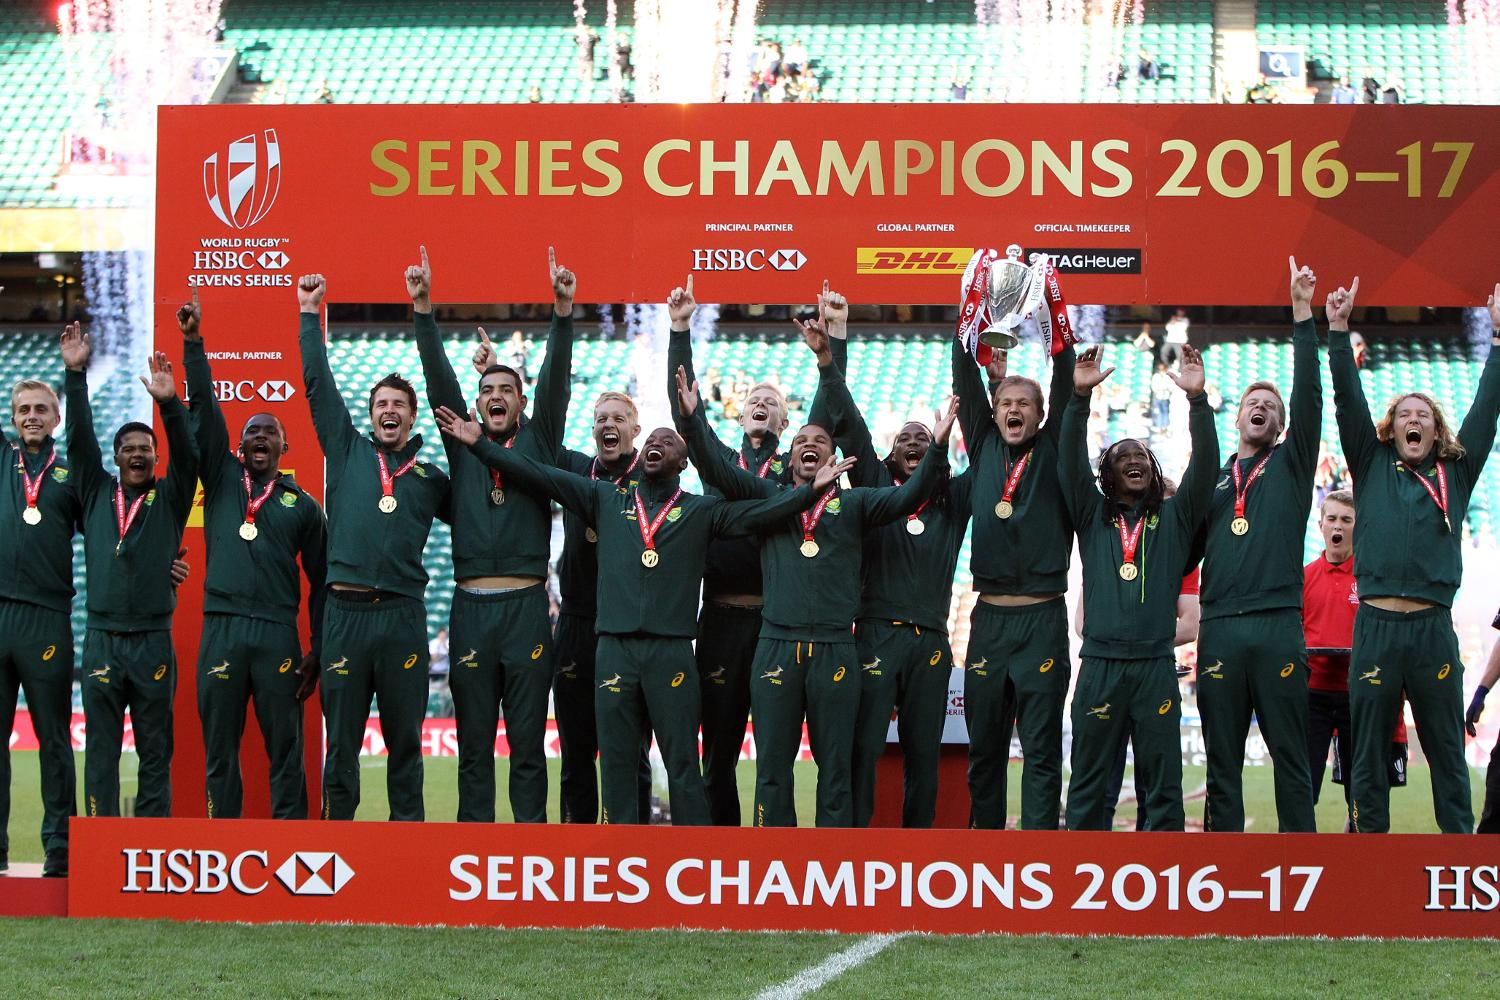 SOUTH AFRICA WINS THE 2016-17 SERIES